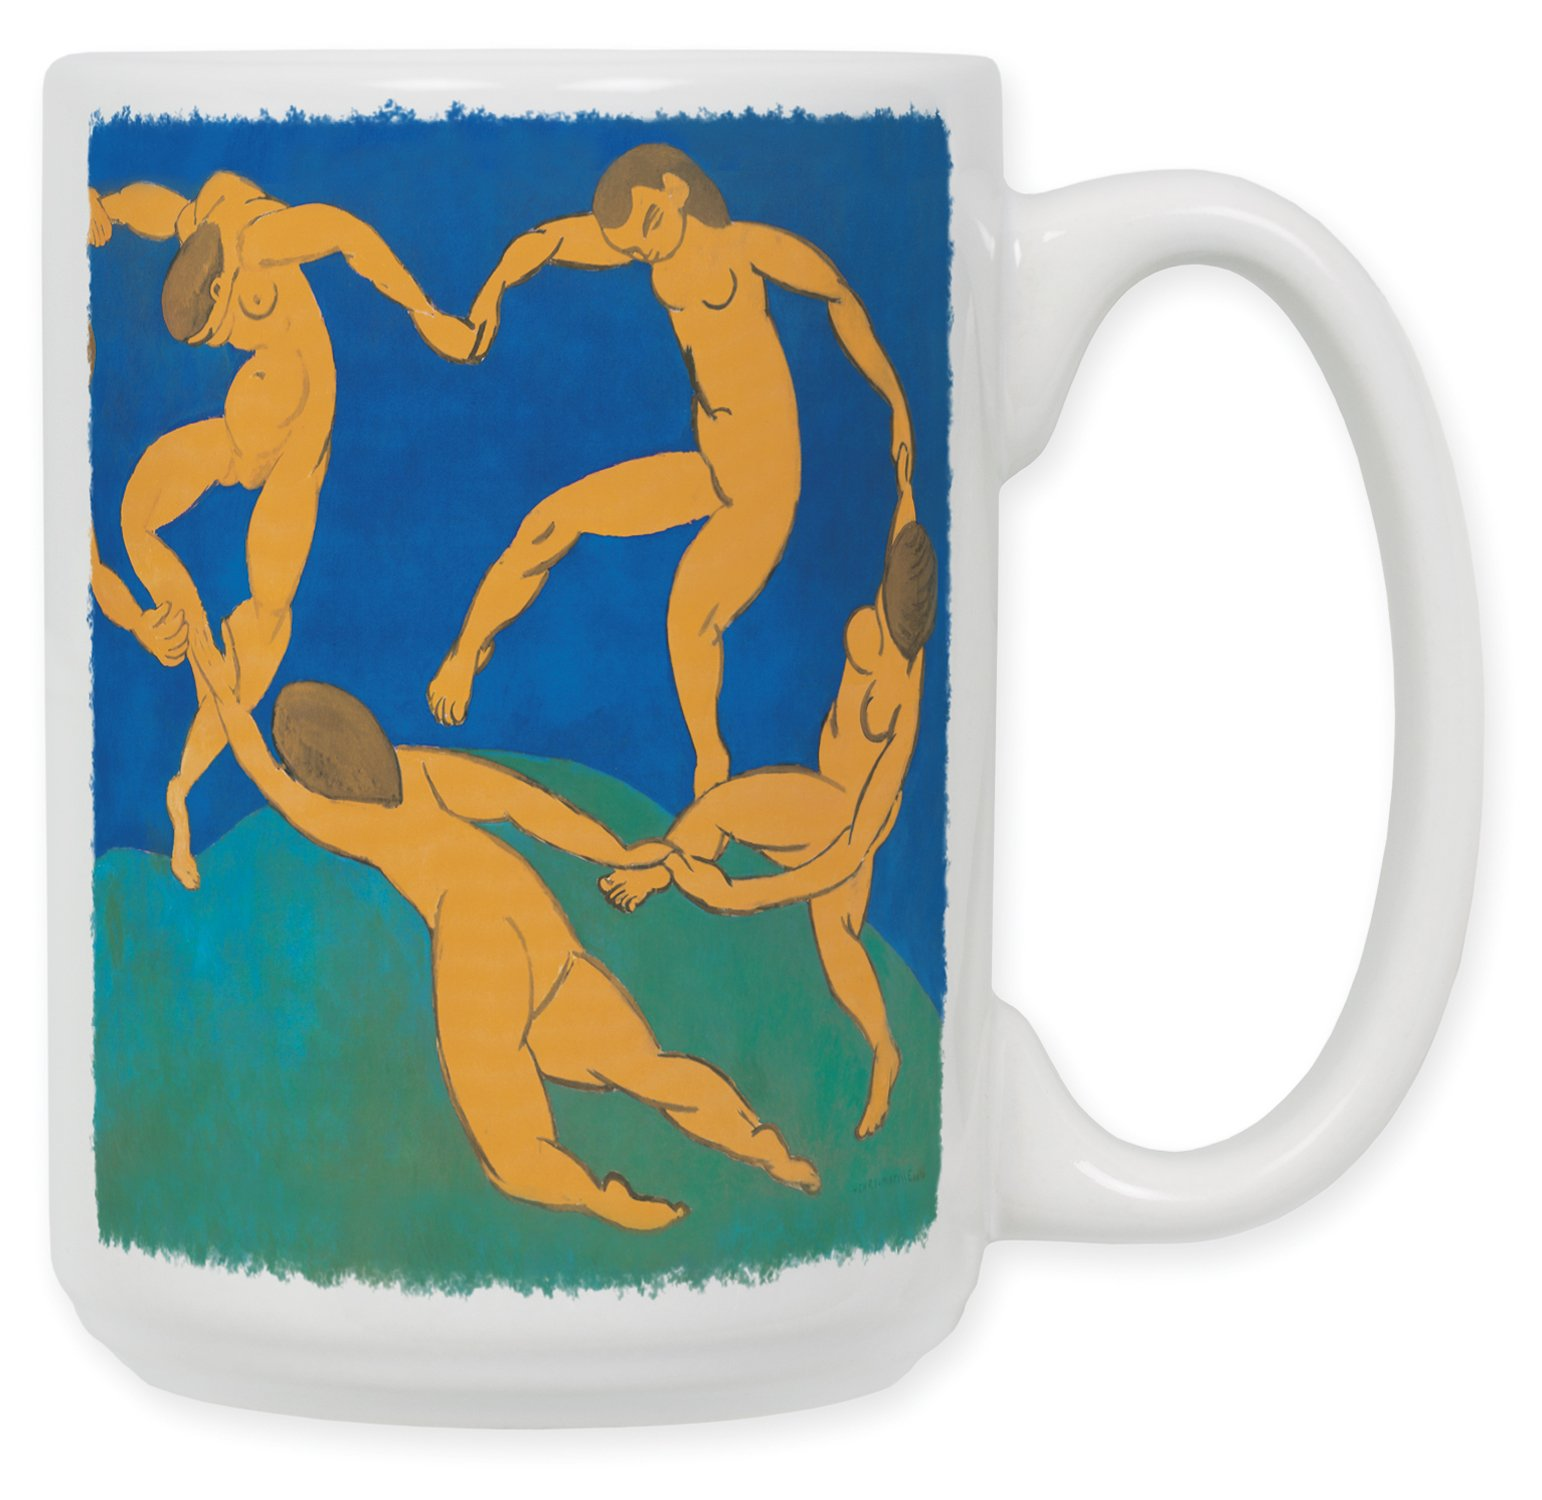 Art Plates ''Matisse: The Dance'' Ceramic Coffee Mug, 15 oz